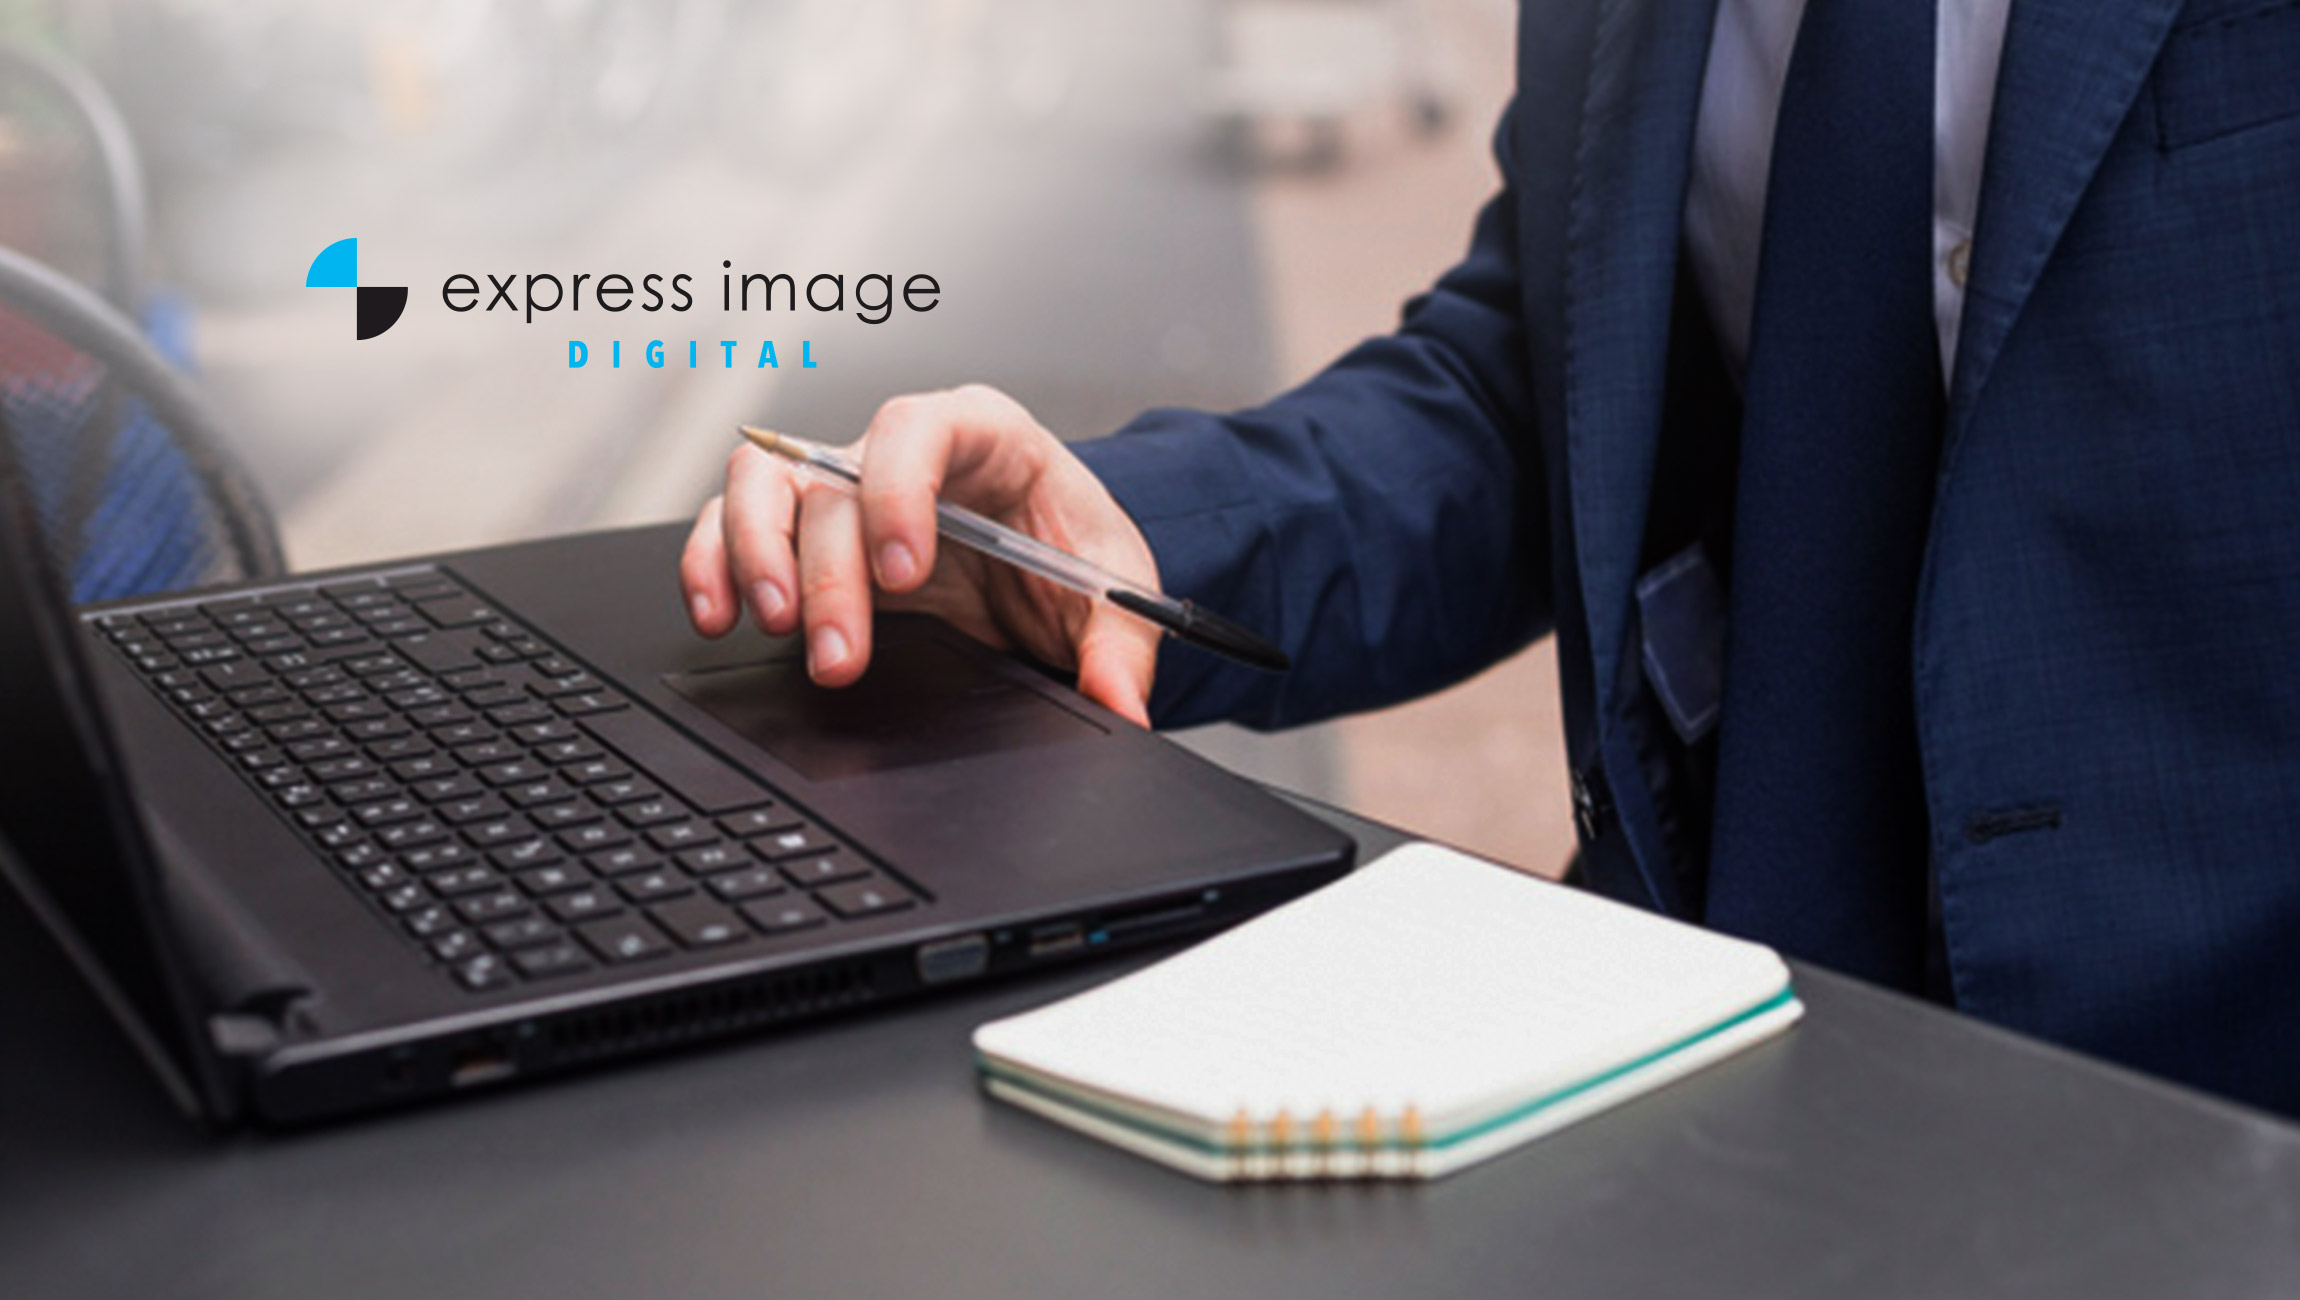 Express Image Digital Expands Executive Team to Improve Customer Experience